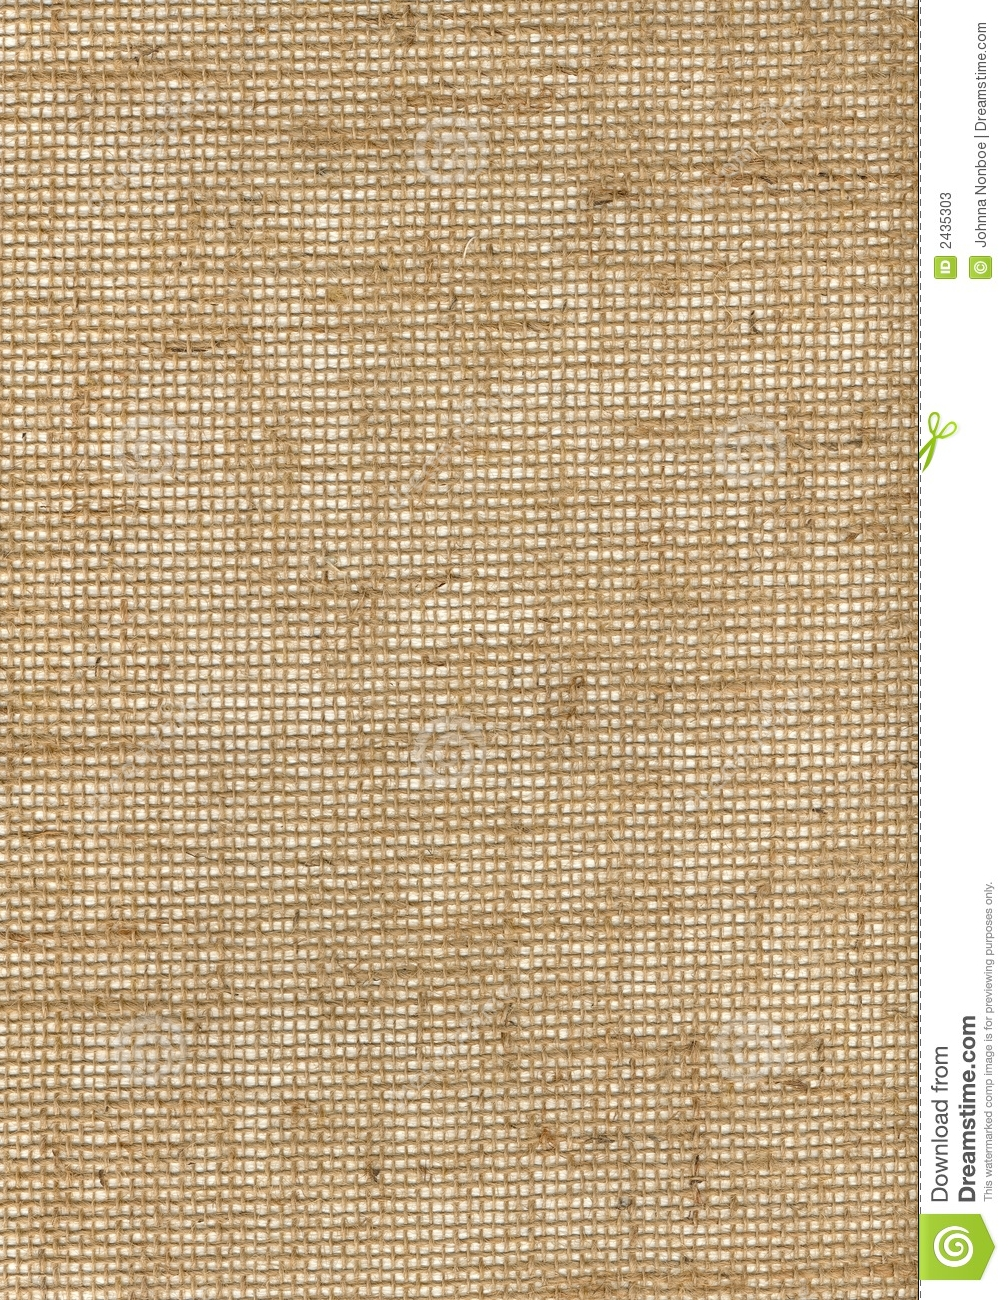 More similar stock images of ` Jute Fabric / Notice Board `